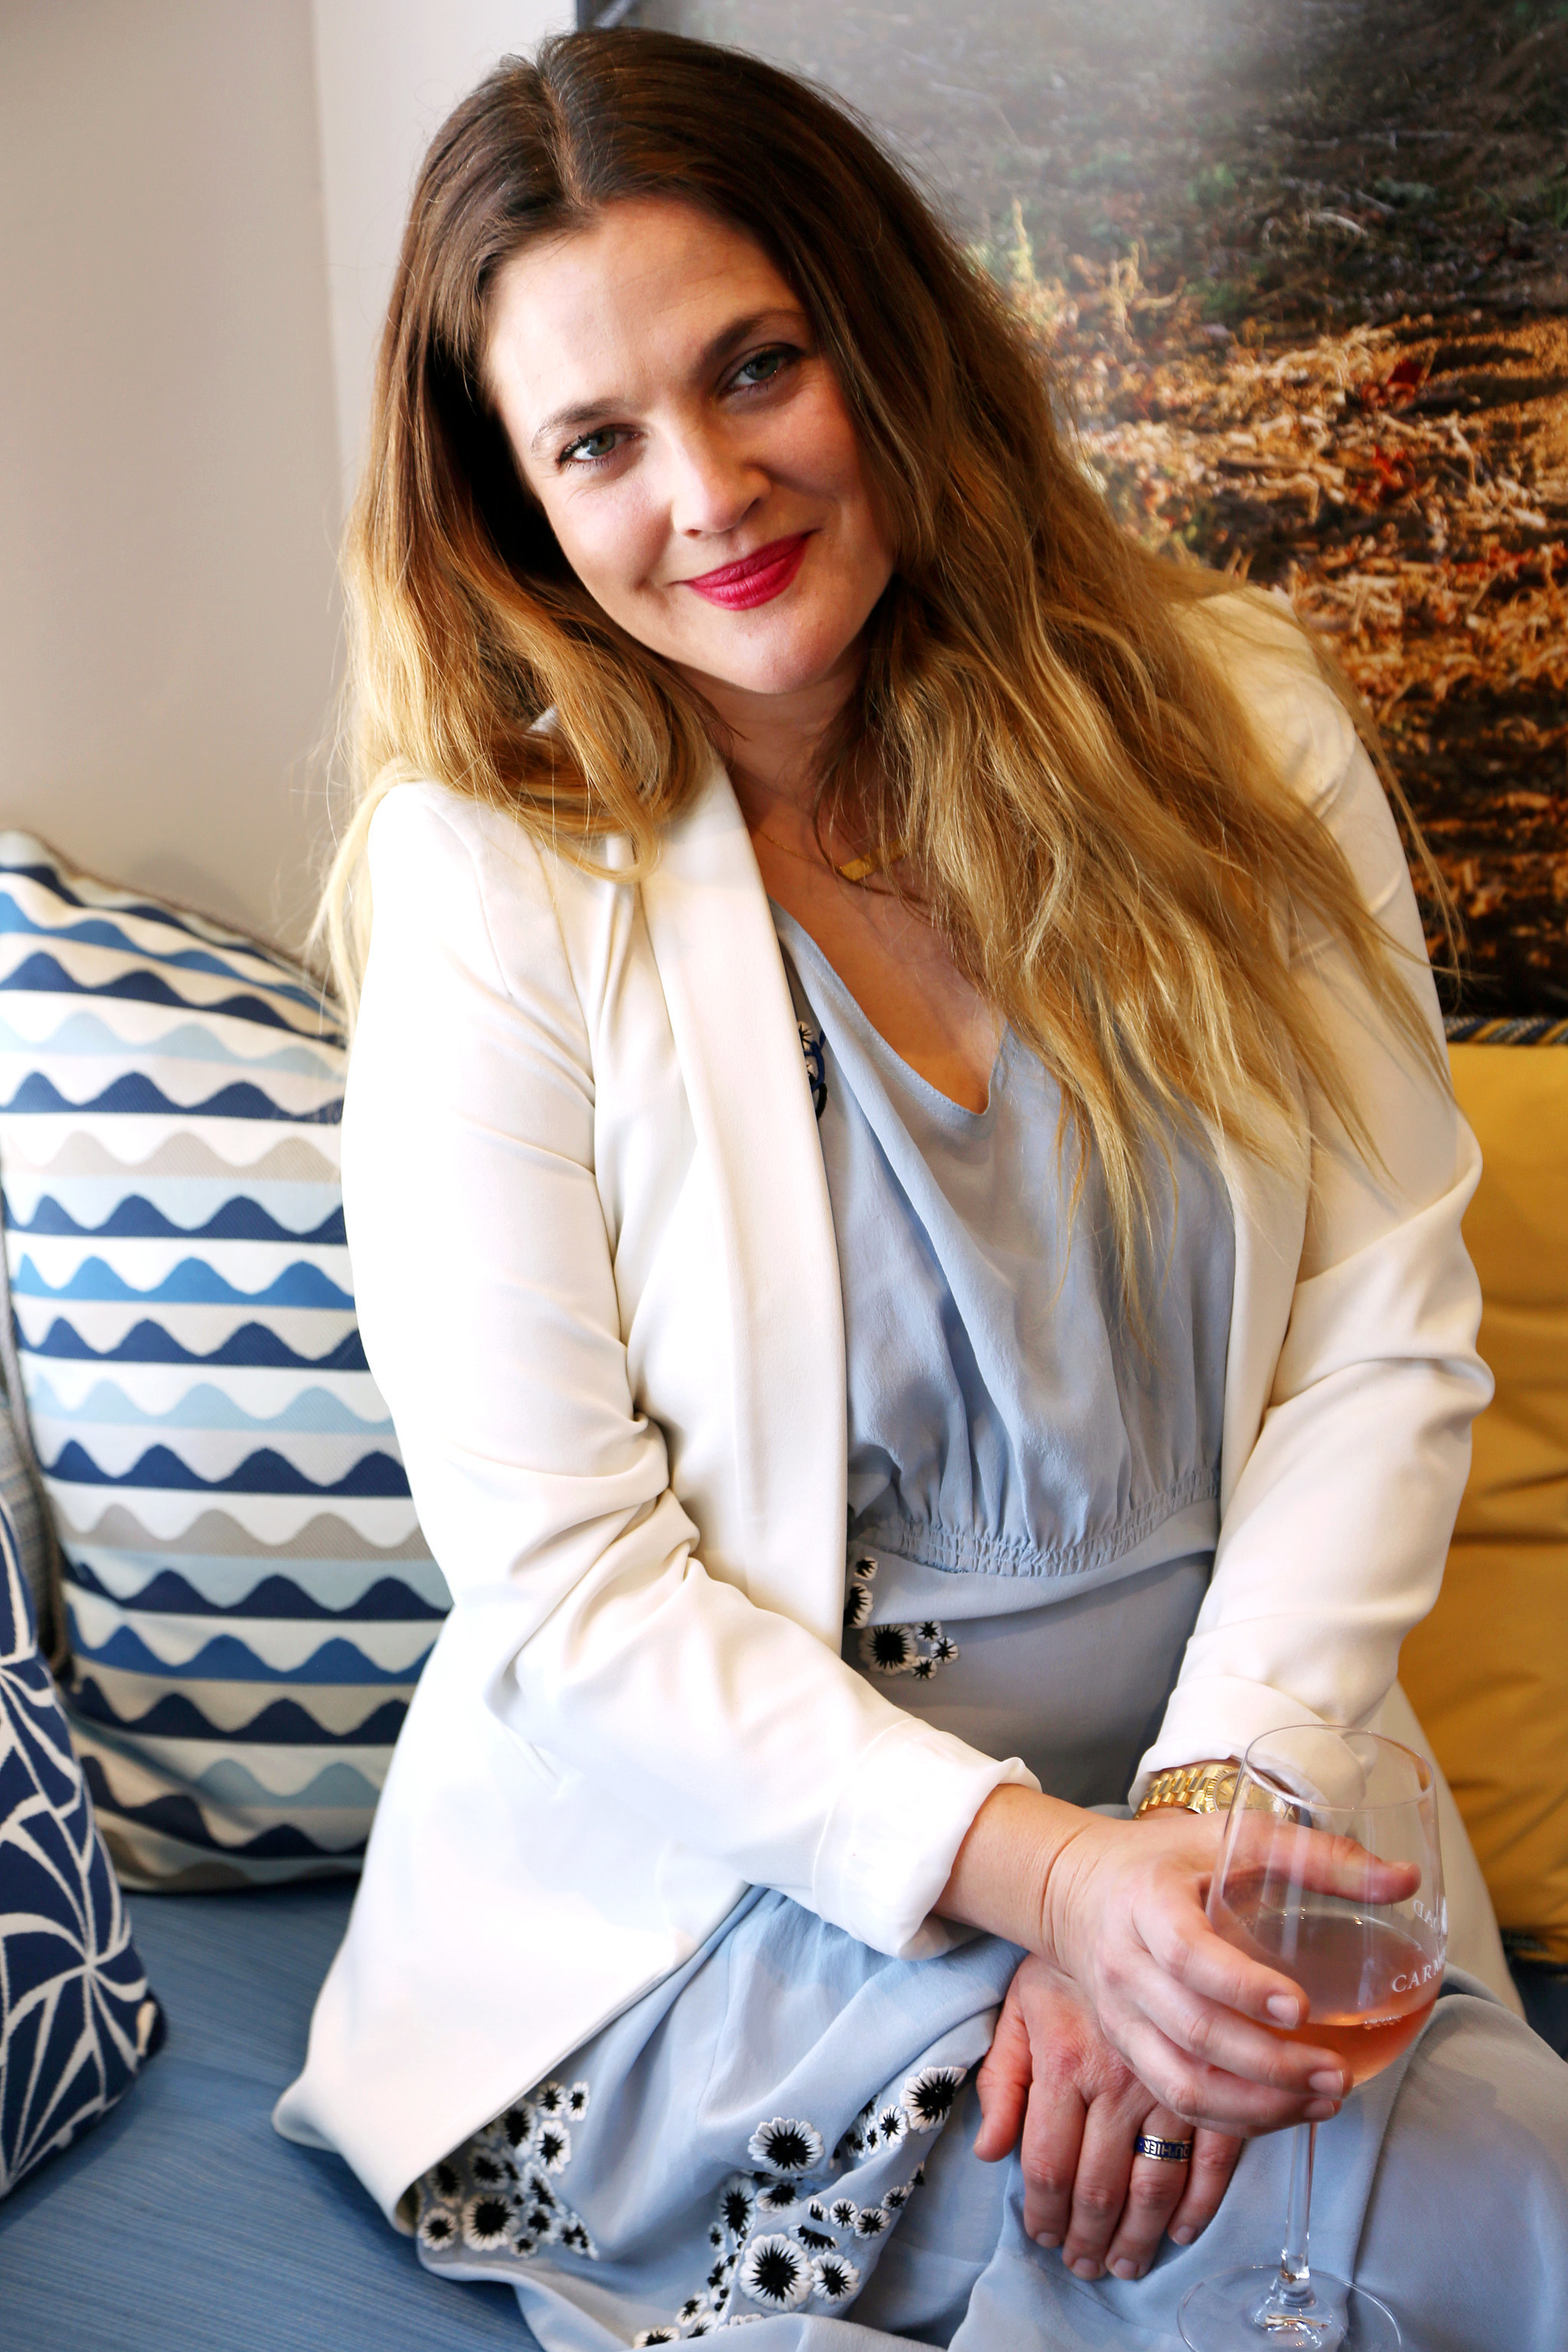 Drew Barrymore Talks About the Barrymore Rose Wine Release ... Drew Barrymore